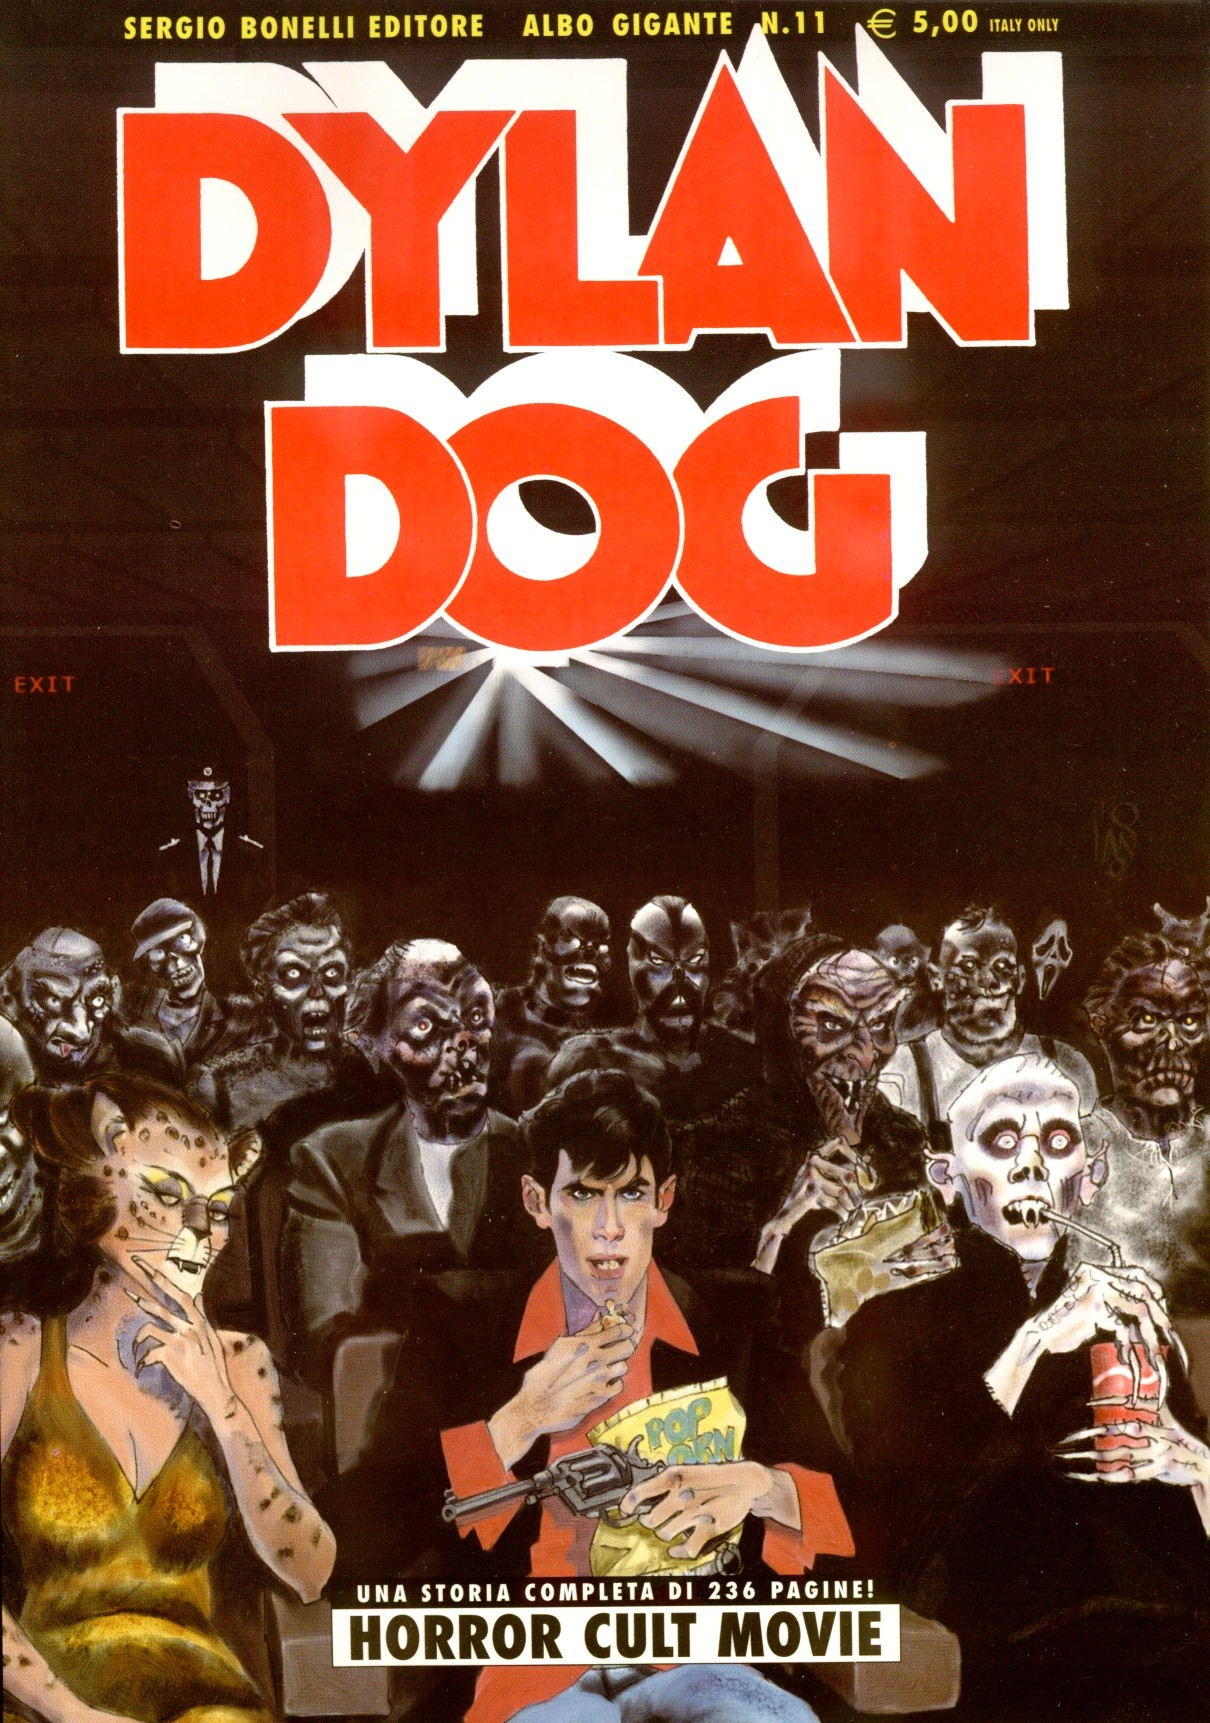 Dylan dog by angelo stano cover copertina sergio bonelli fumetto cult stories cultstories - Dylan dog attraverso lo specchio ...